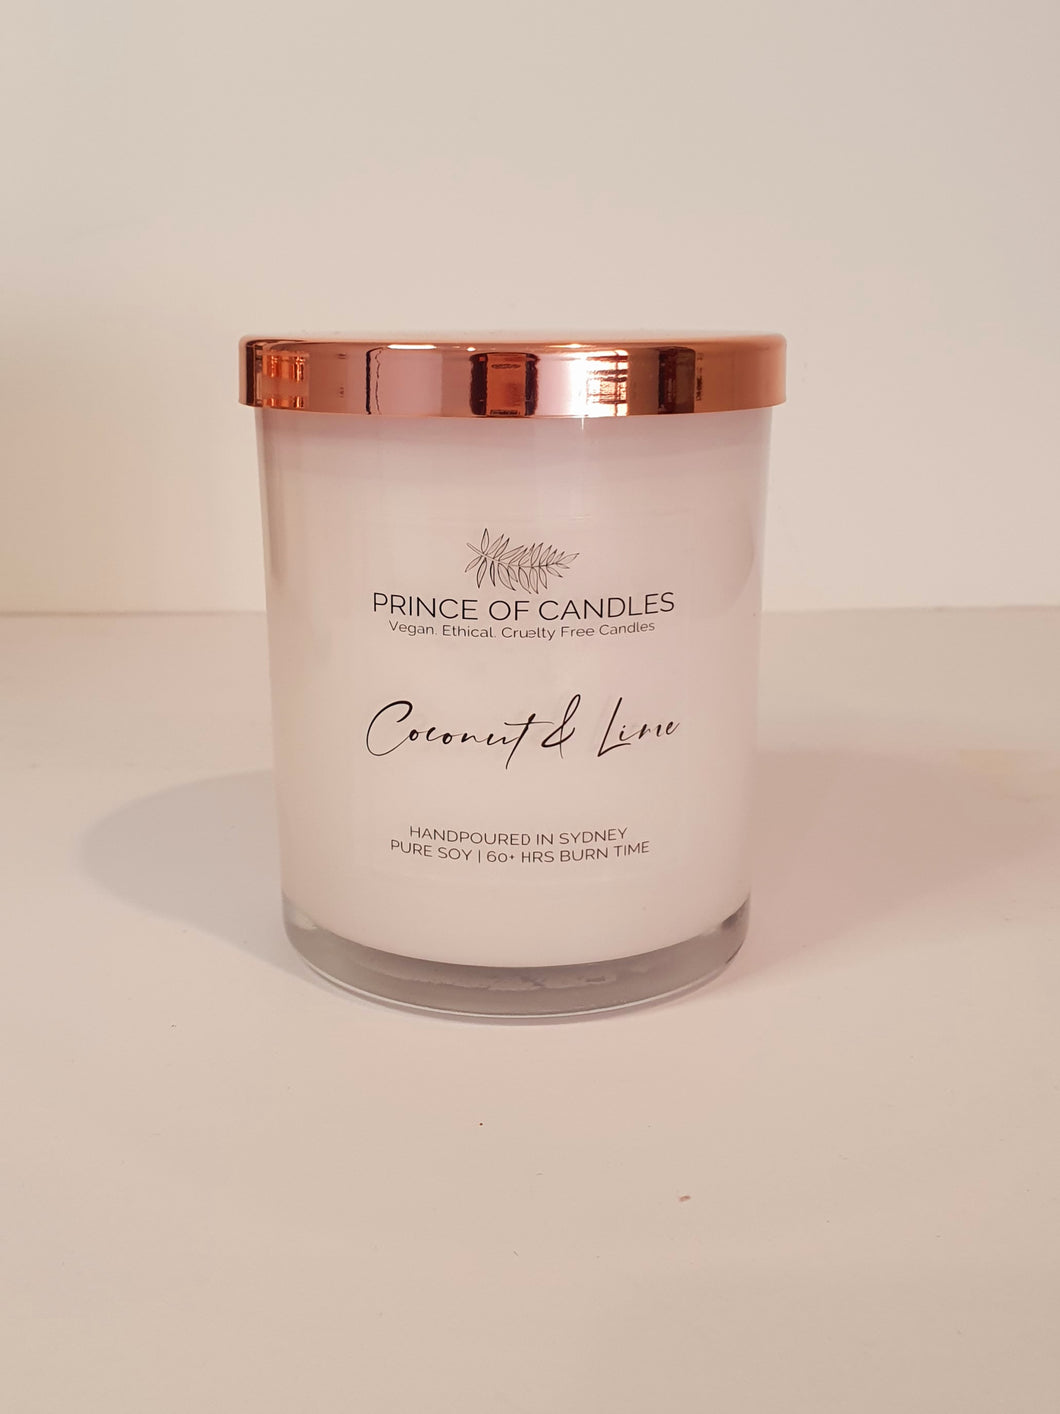 LIMITED EDITION: Coconut & Lime hand poured soy candles Australia - Prince of Candles